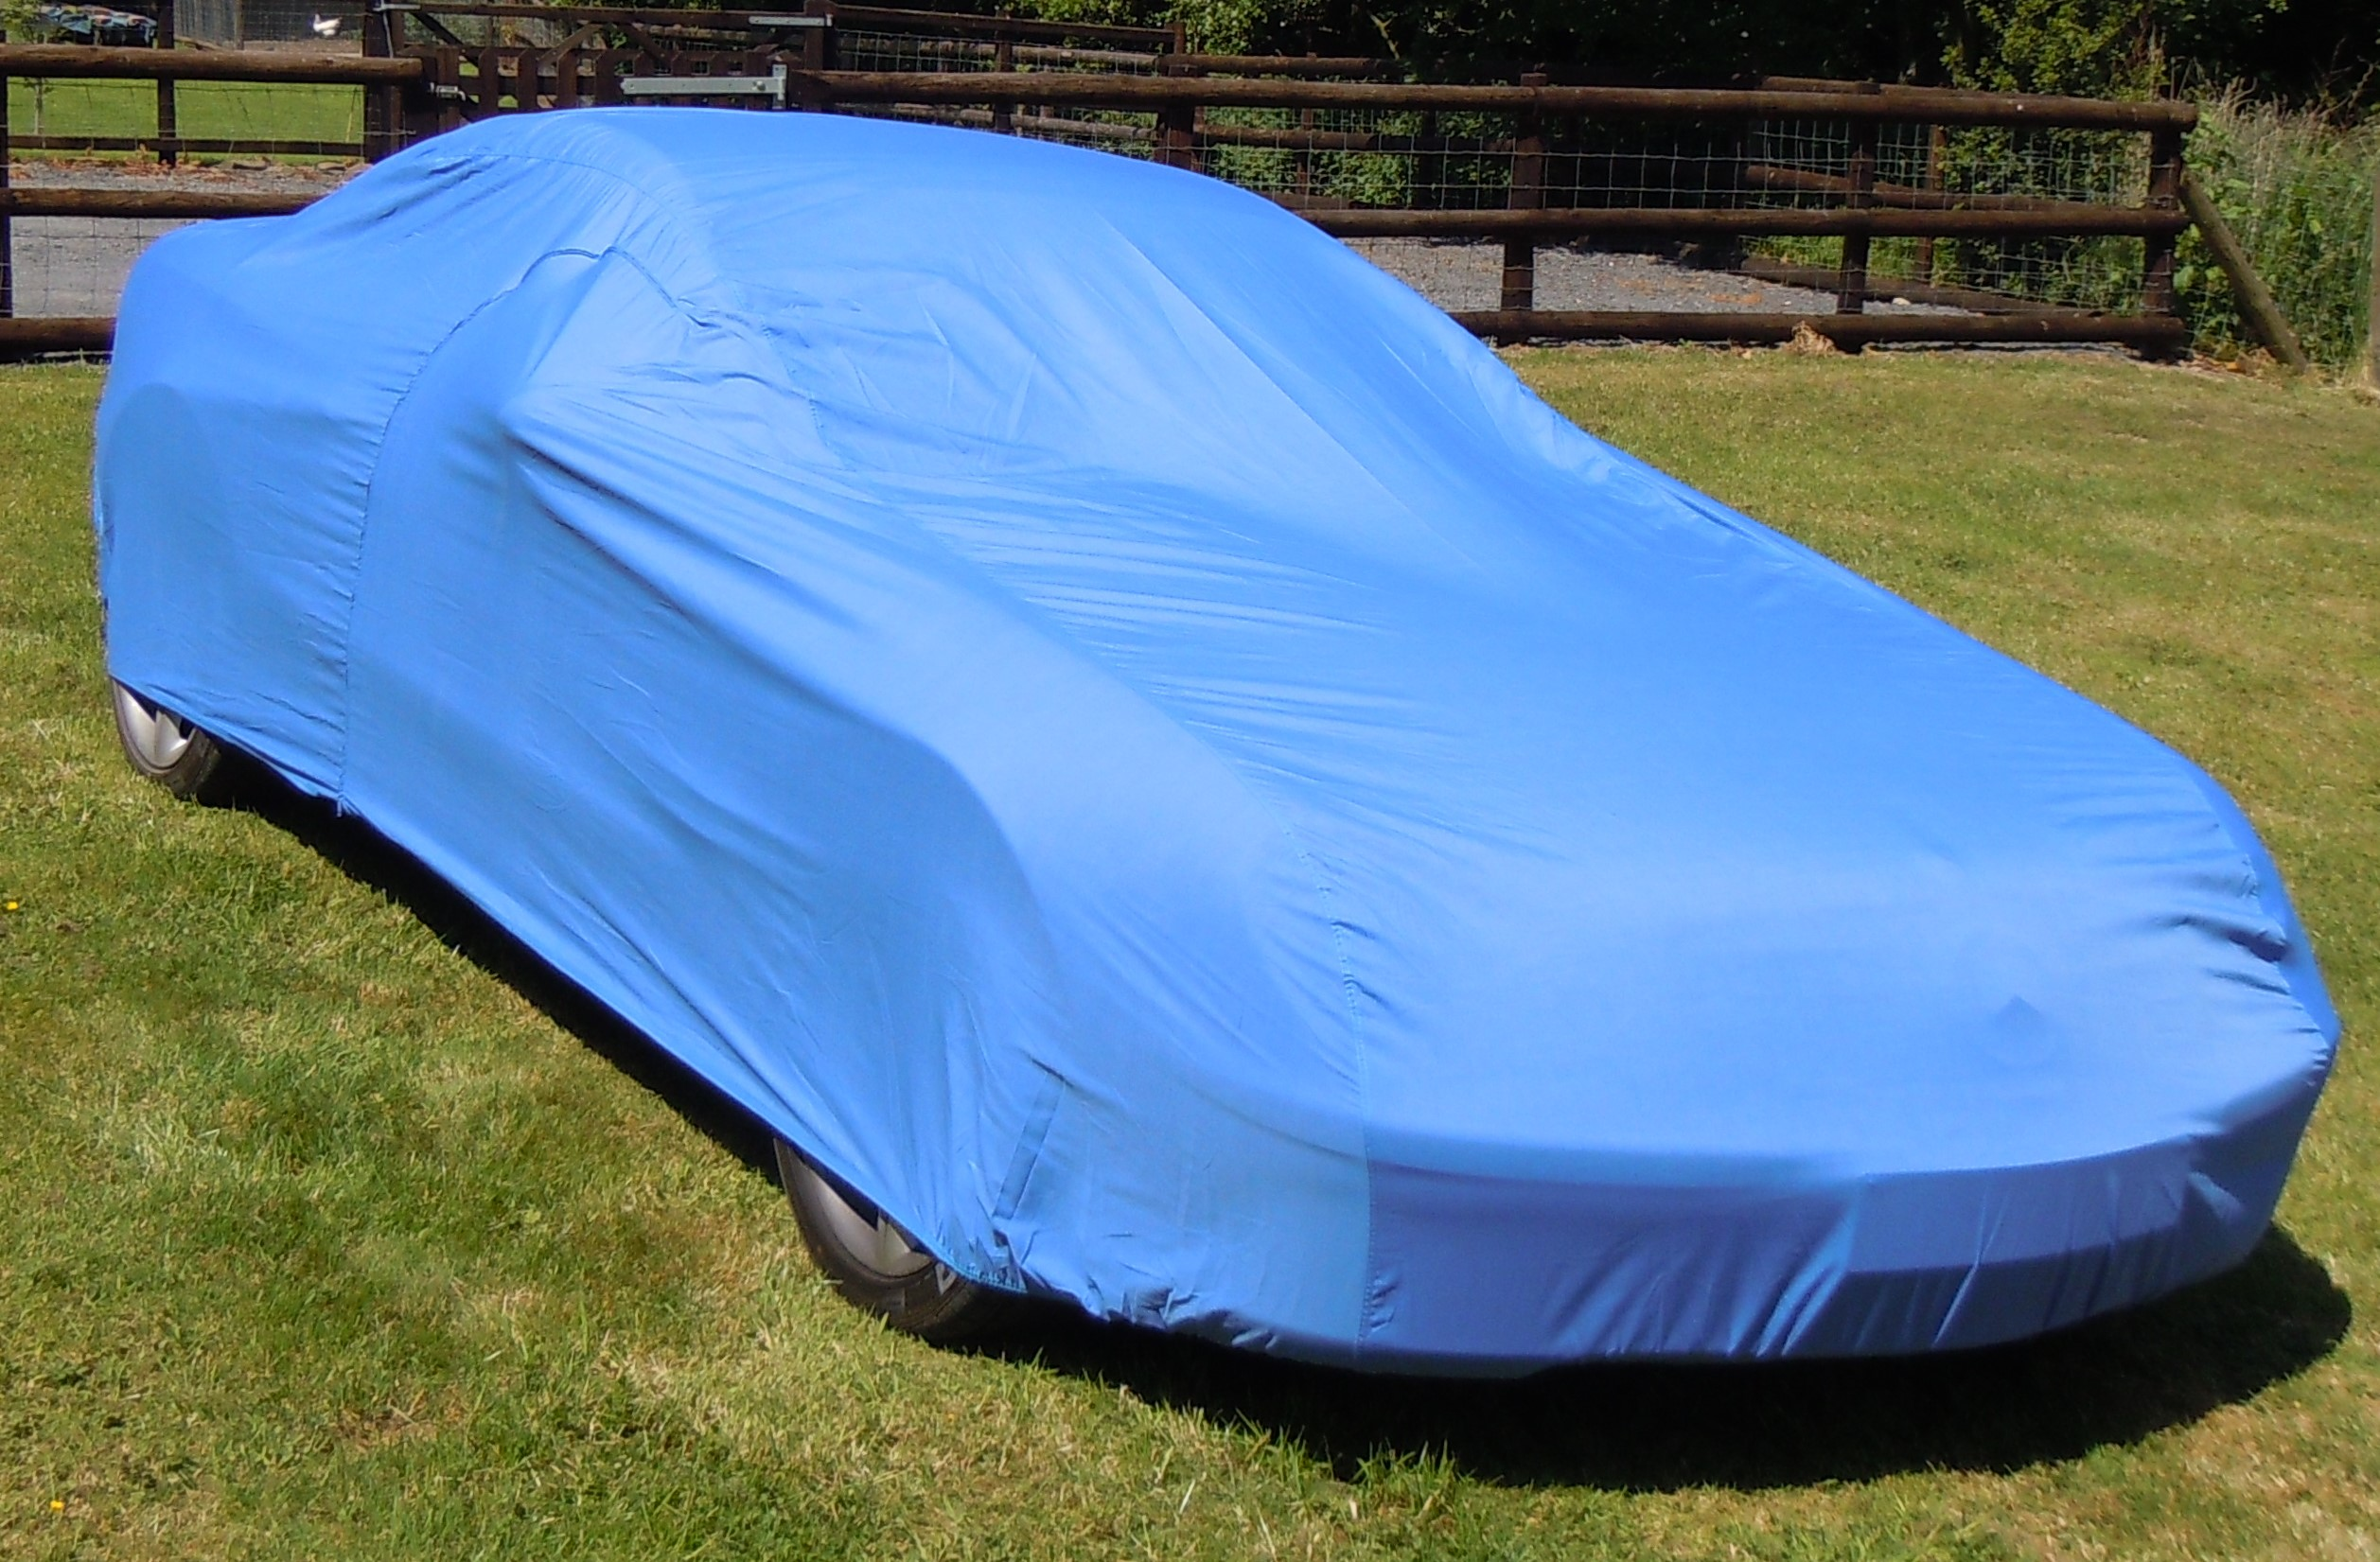 QUALITY WATERPROOF CAR COVER R107 MERCEDES BENZ COUPE H-DUTY COTTON LINED SIZE L